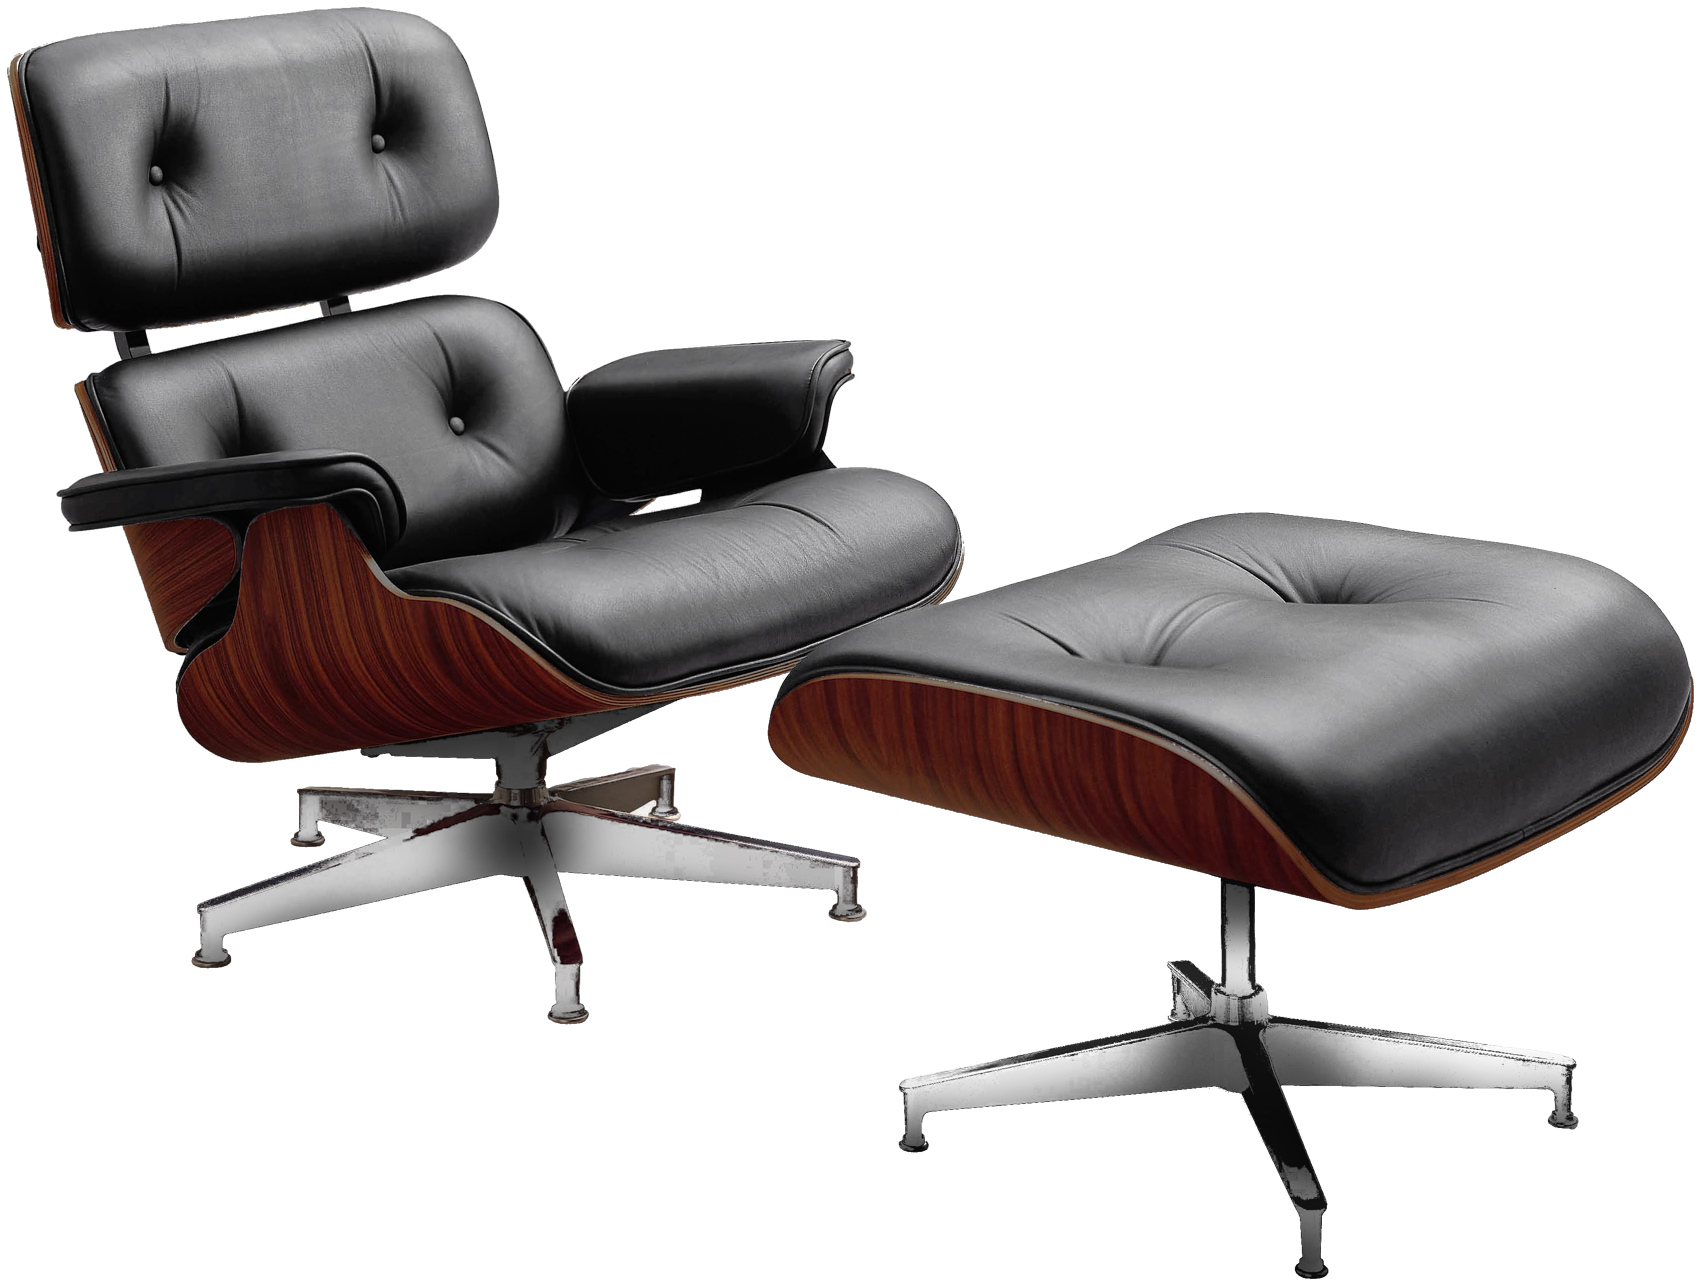 Eames Lounge Chair Image 50